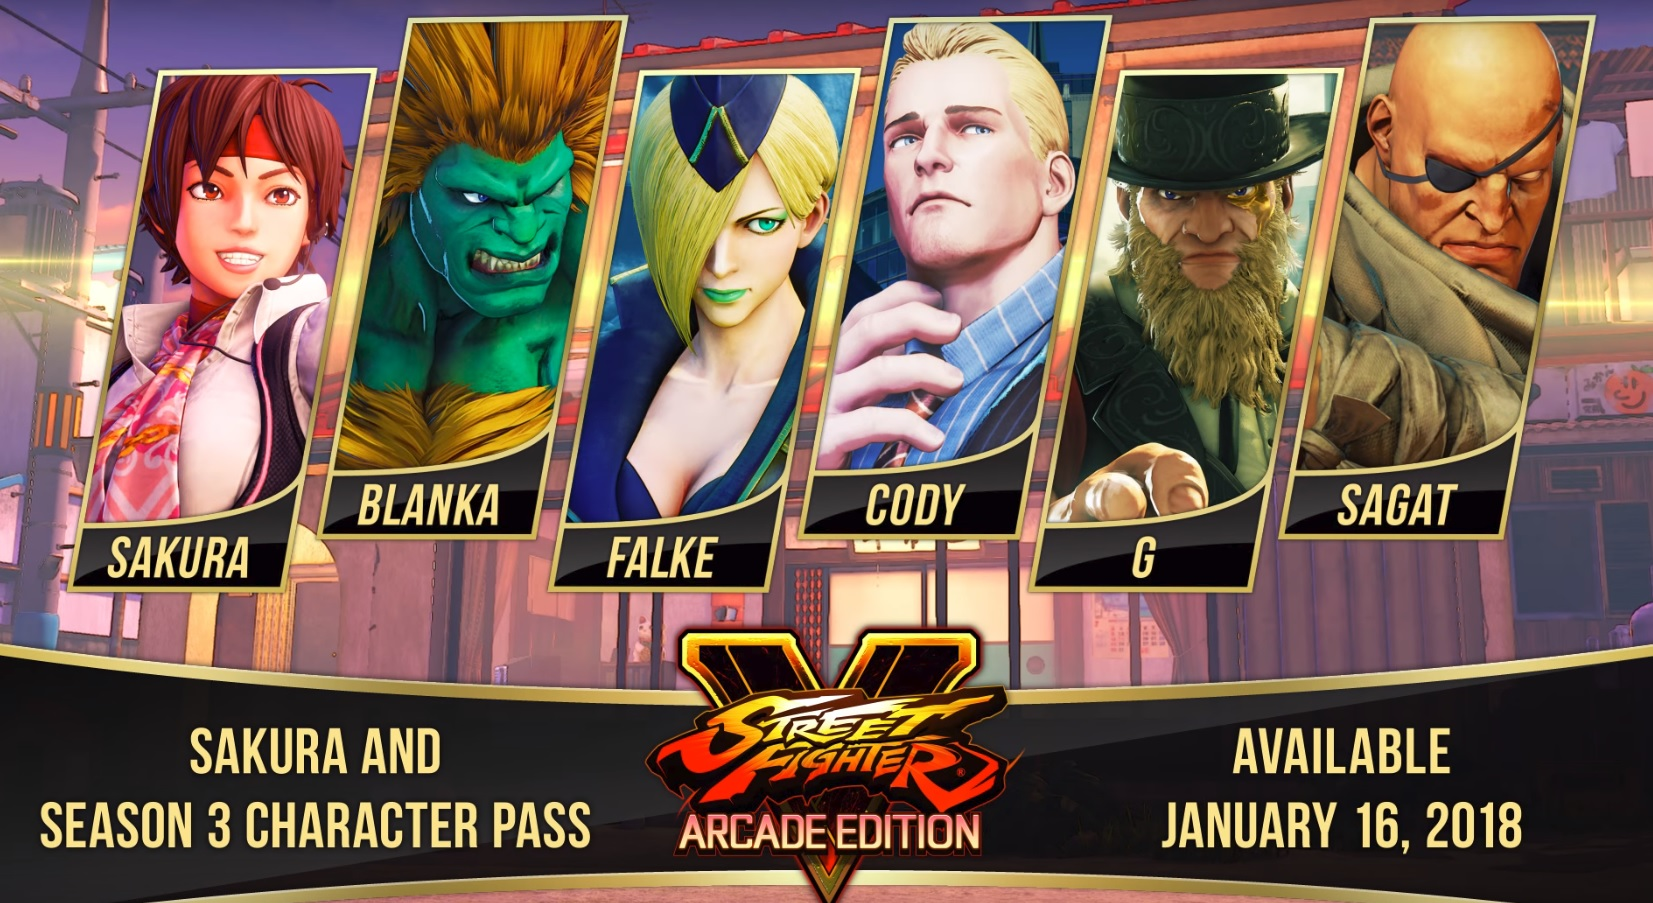 Street Fighter V Season 3 Characters Revealed, Sakura, Blanka And Sagat Return